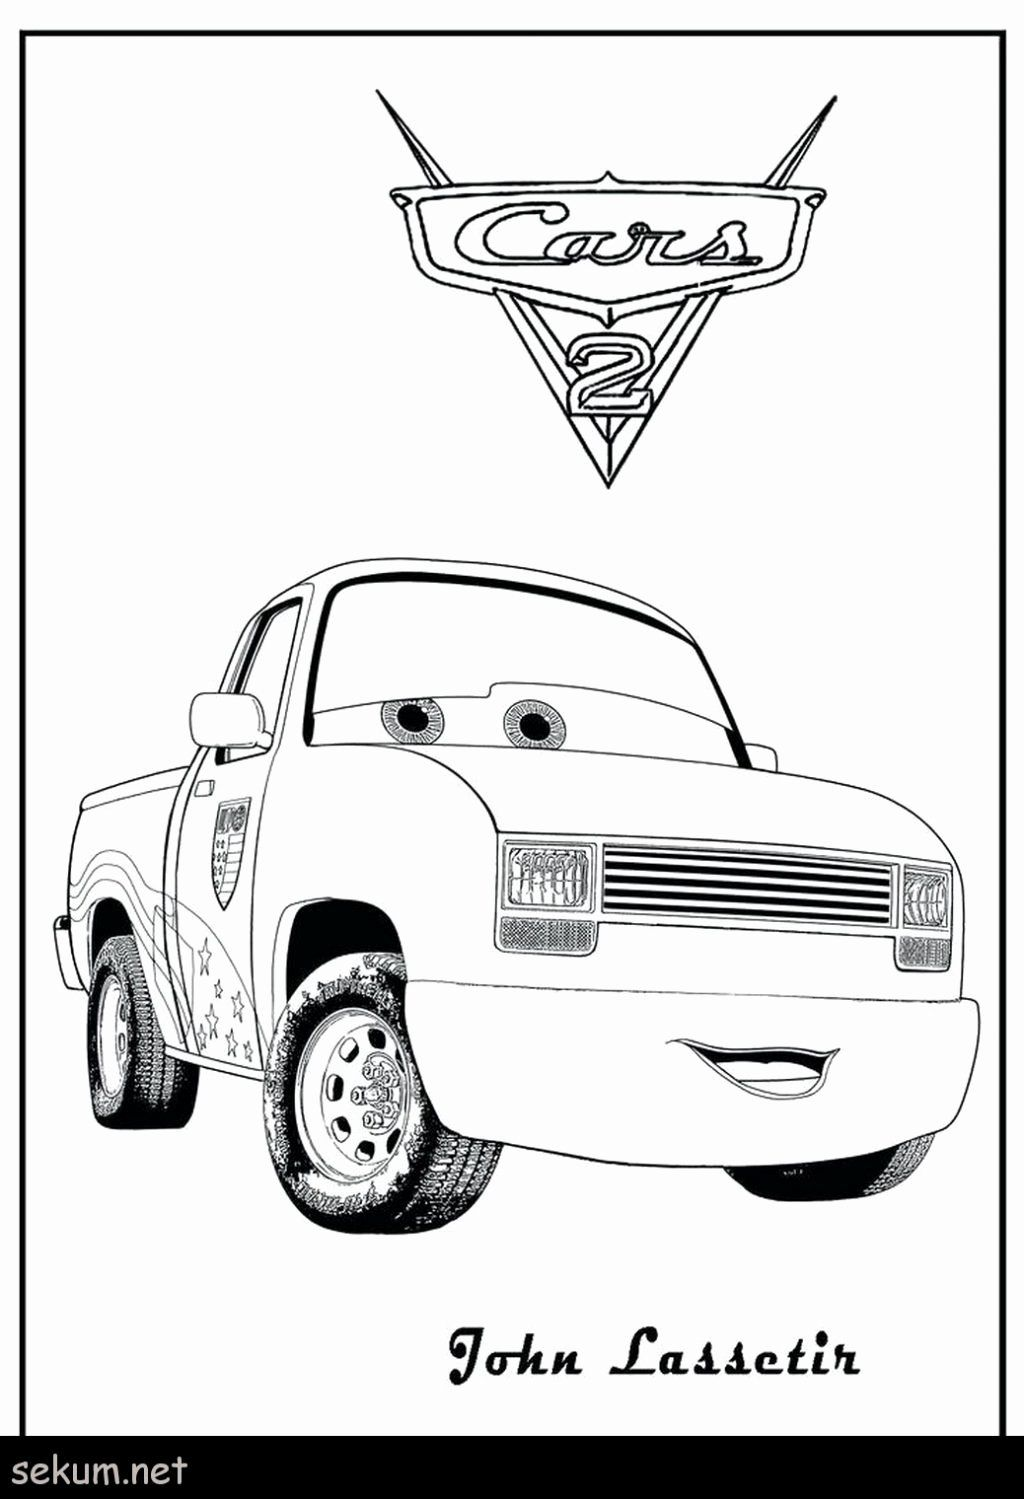 Coloring Pages Of Car New Coloring Book Remarkable Car Printable Coloring Pages Cars Coloring Pages Coloring Pages Disney Coloring Pages [ 1499 x 1024 Pixel ]